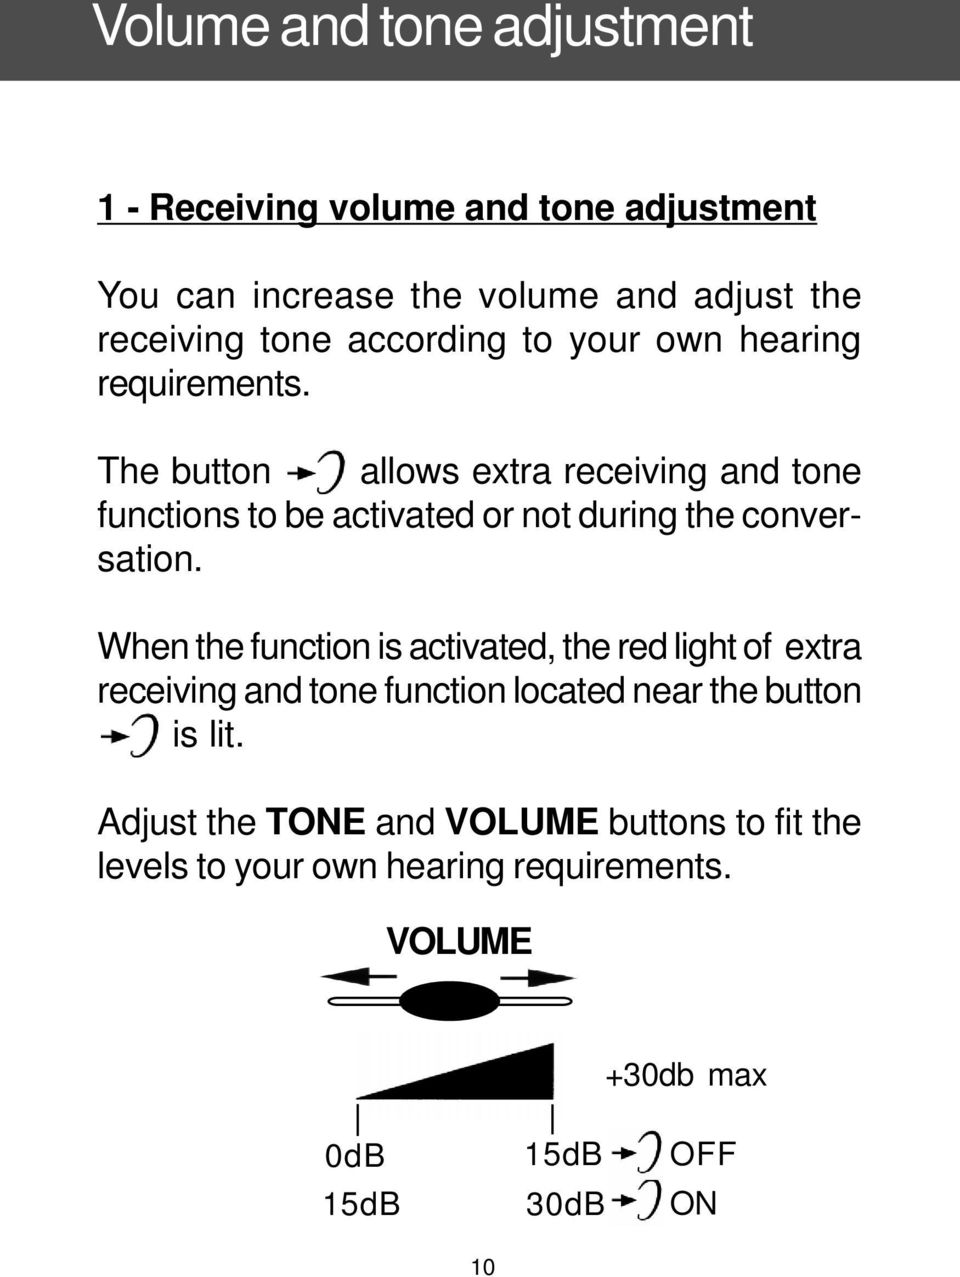 The button allows extra receiving and tone functions to be activated or not during the conversation.